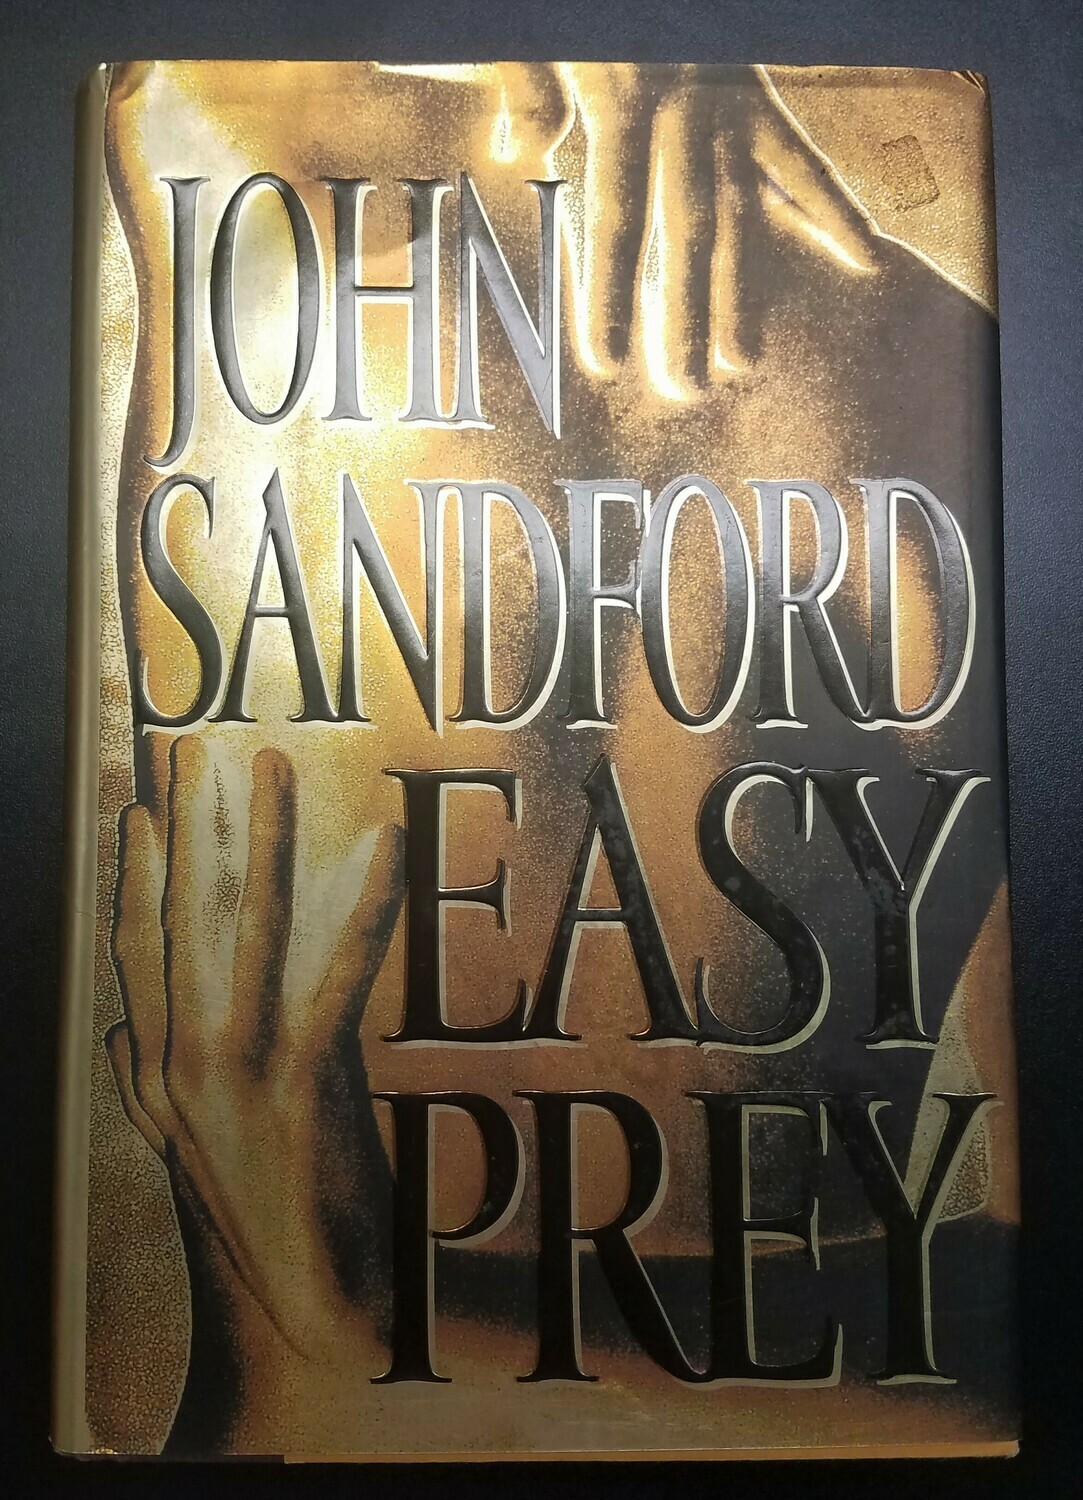 Easy Prey by John Sandford - Hardback